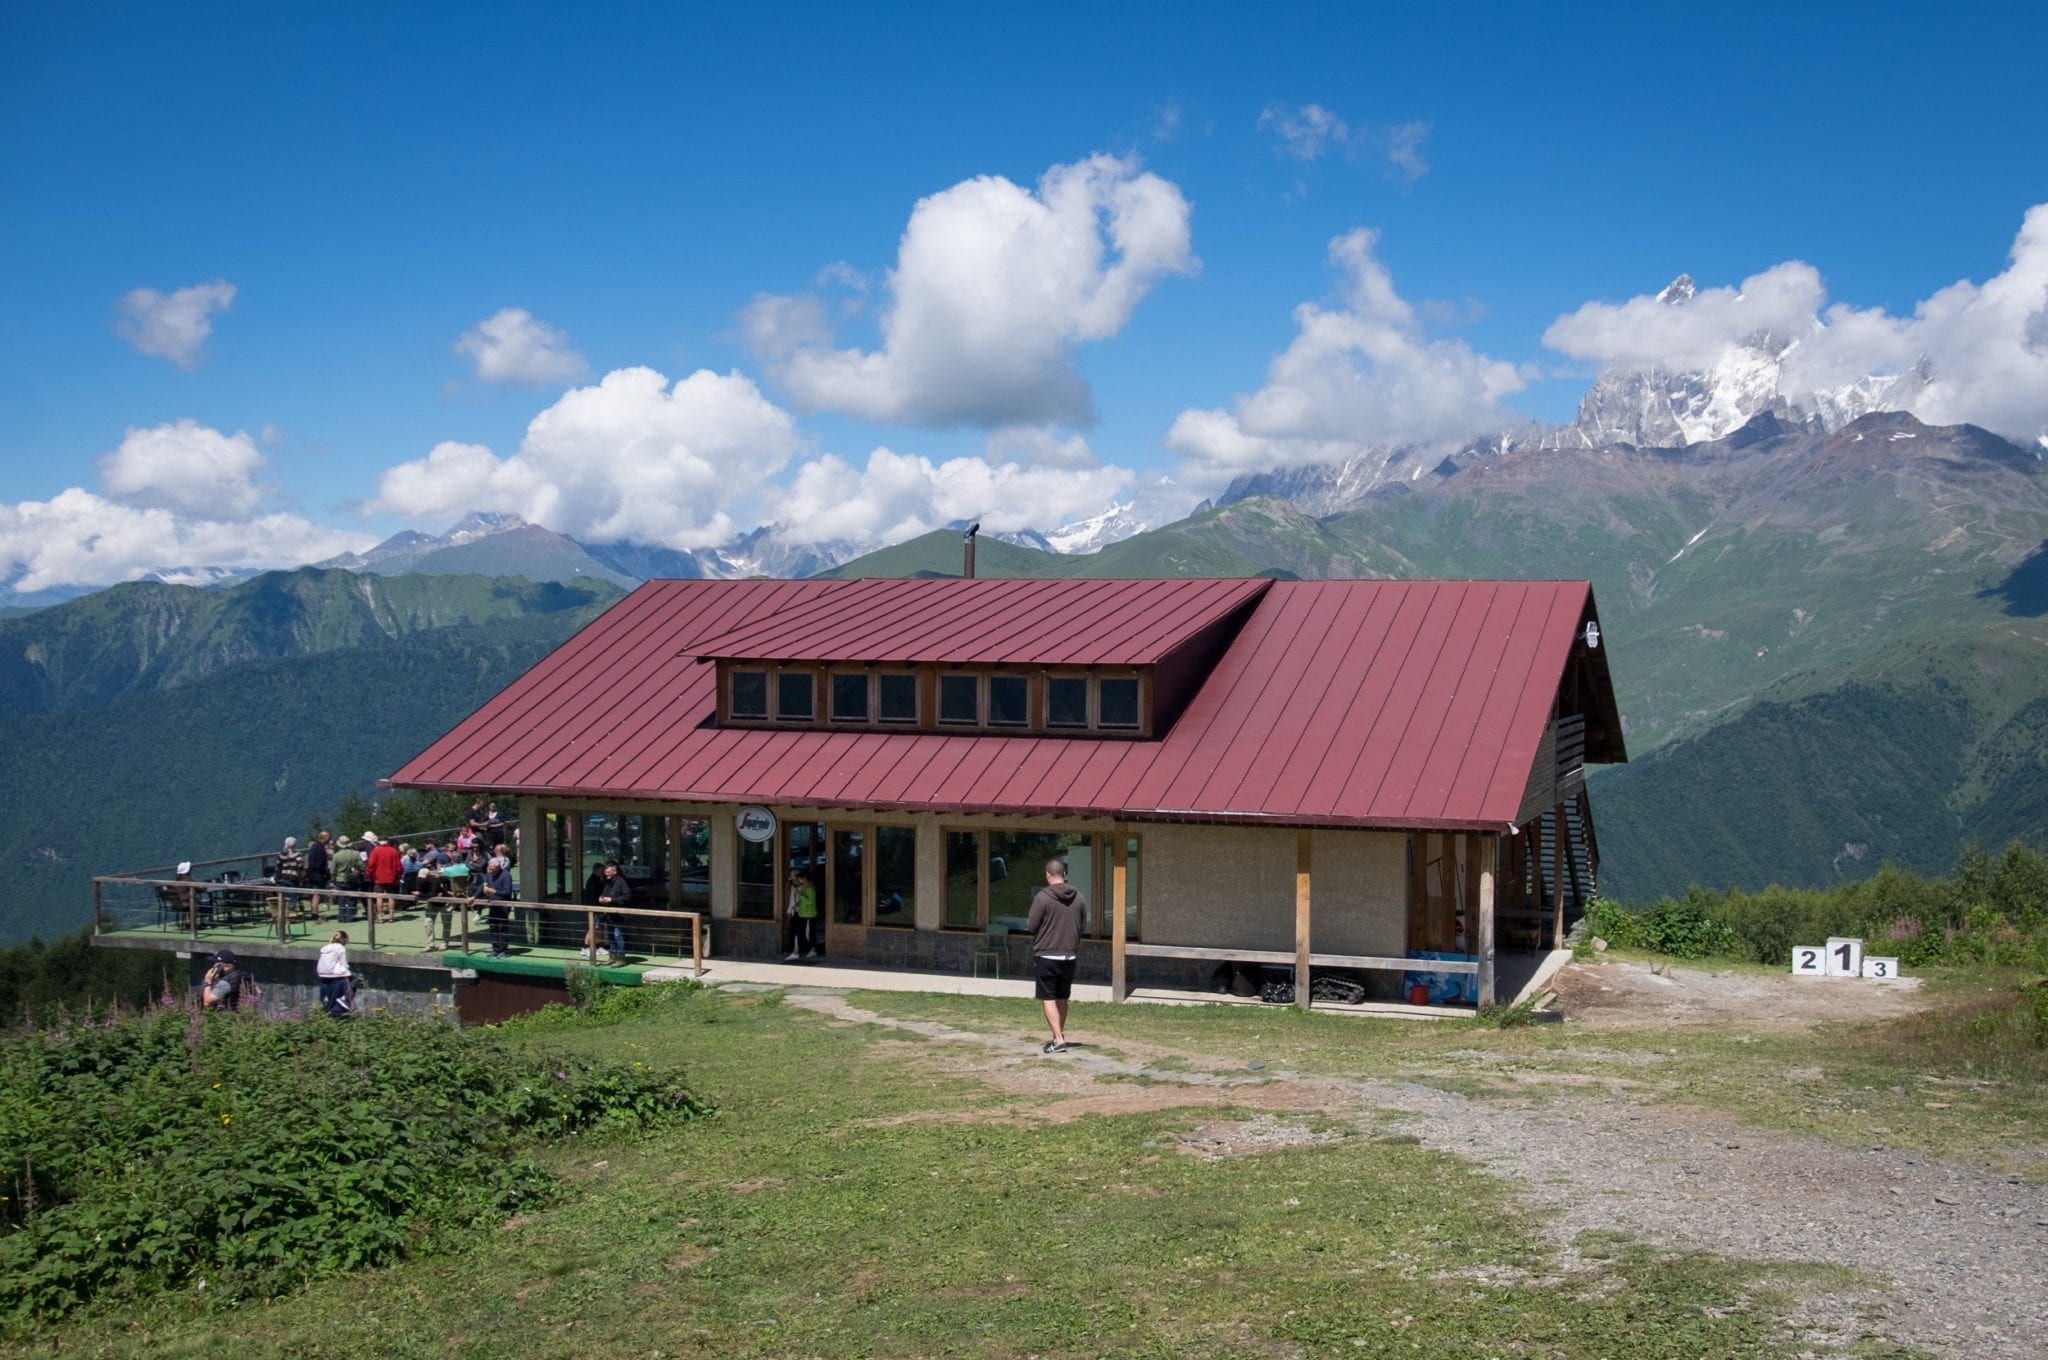 A restaurant with a maroon roof overlooks a Mountain View in Svaneti.